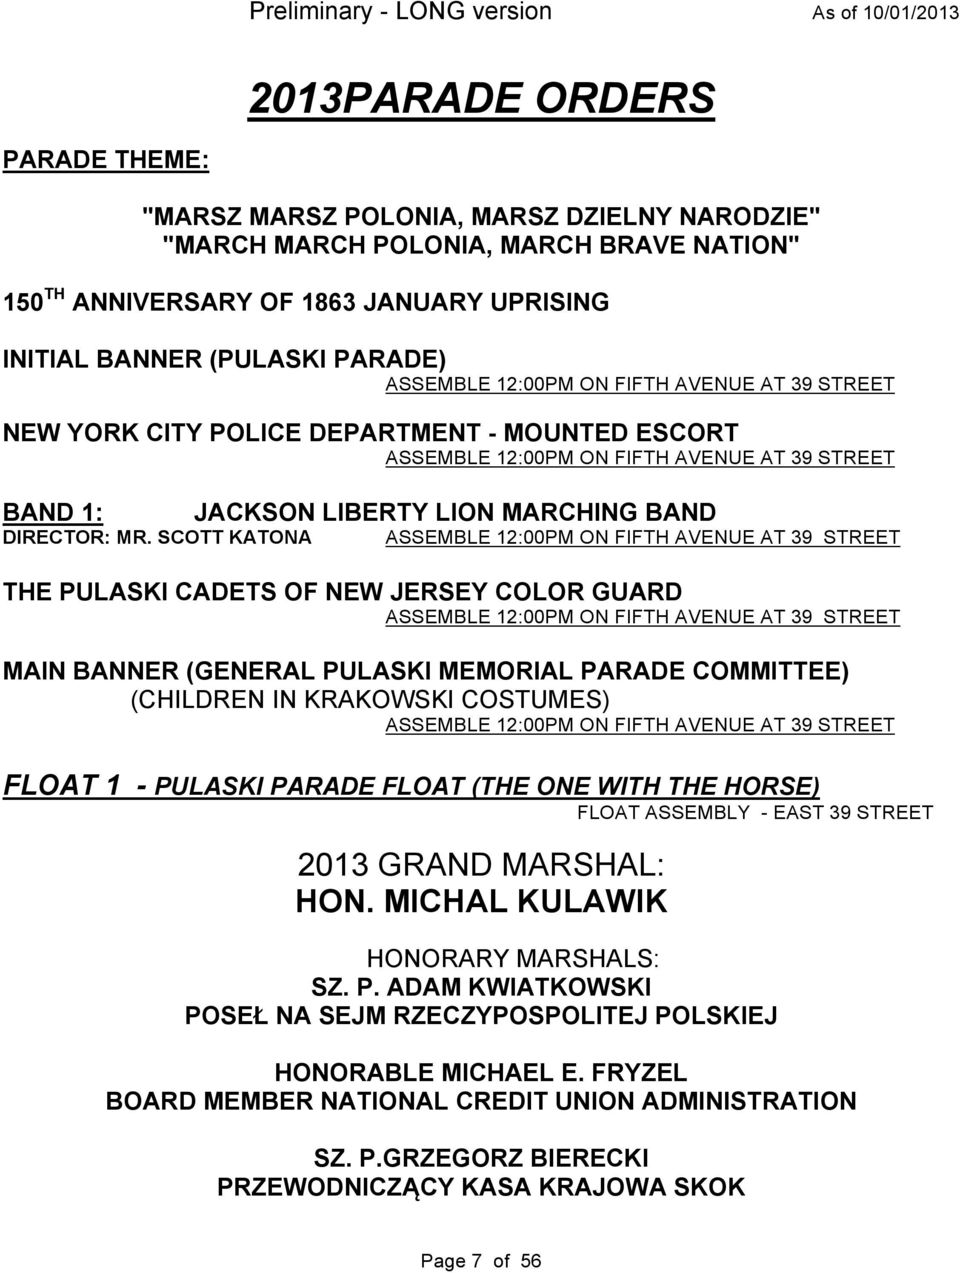 SCOTT KATONA JACKSON LIBERTY LION MARCHING BAND ASSEMBLE 12:00PM ON FIFTH AVENUE AT 39 STREET THE PULASKI CADETS OF NEW JERSEY COLOR GUARD ASSEMBLE 12:00PM ON FIFTH AVENUE AT 39 STREET MAIN BANNER